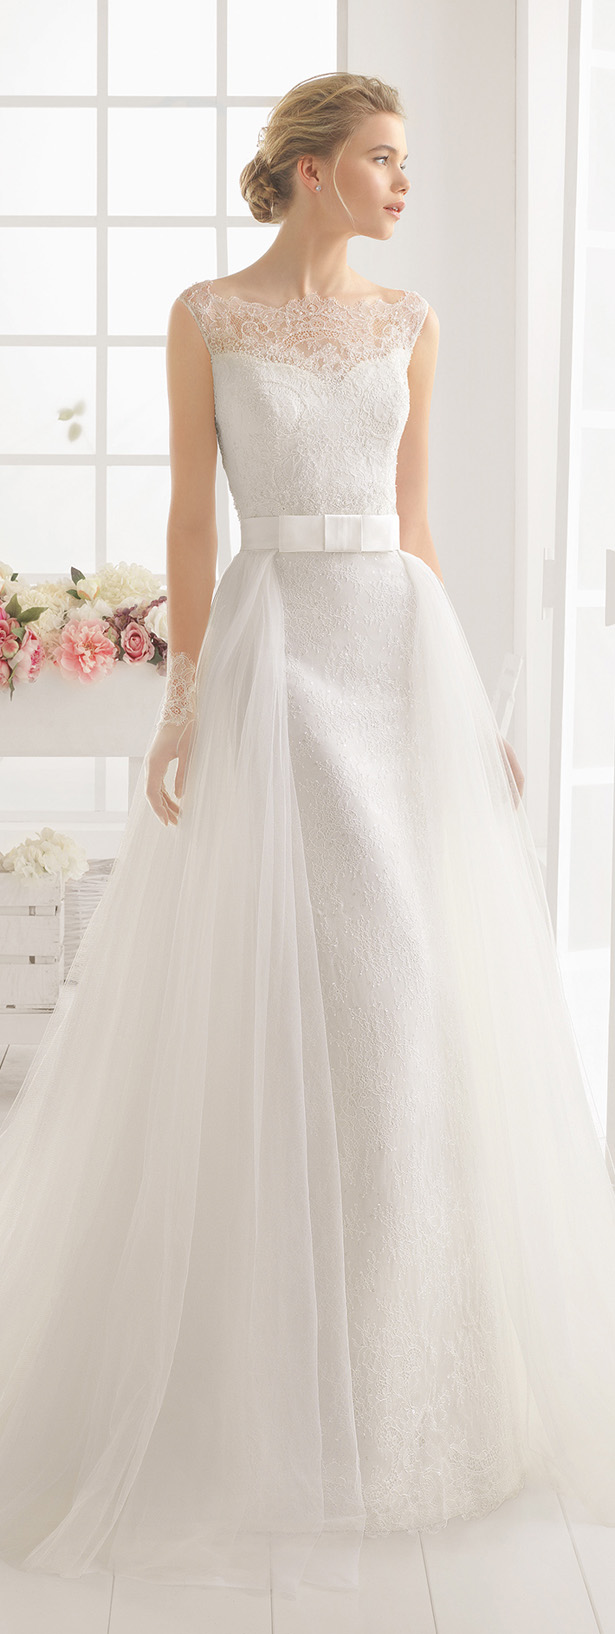 detachable skirt wedding gown detachable wedding dress Bridal Trends Wedding Dresses With Detachable Skirts Belle The